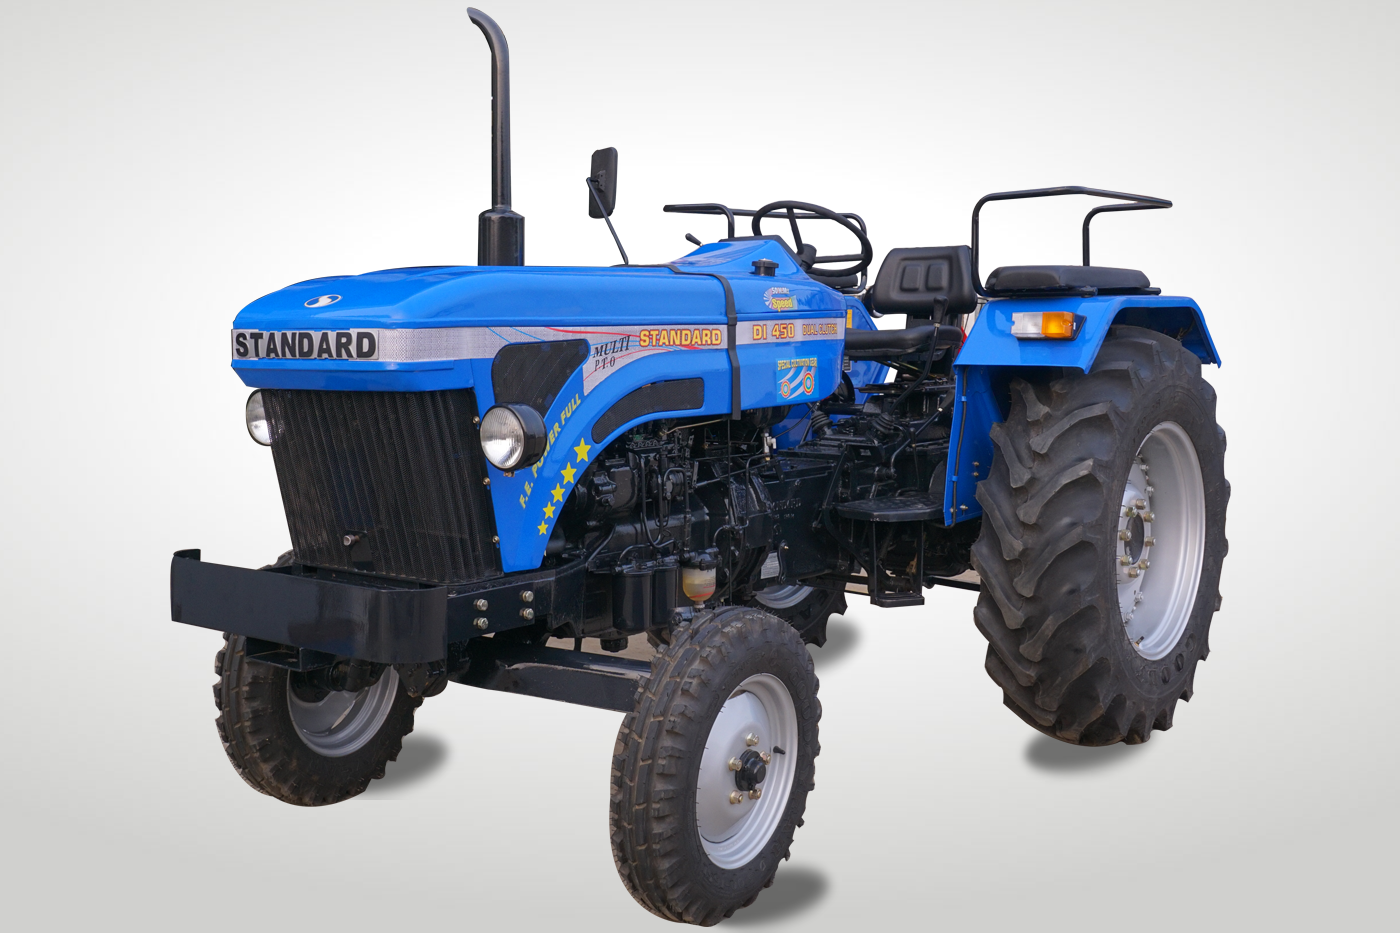 Standard DI 450 Tractor Price Specification Mileage